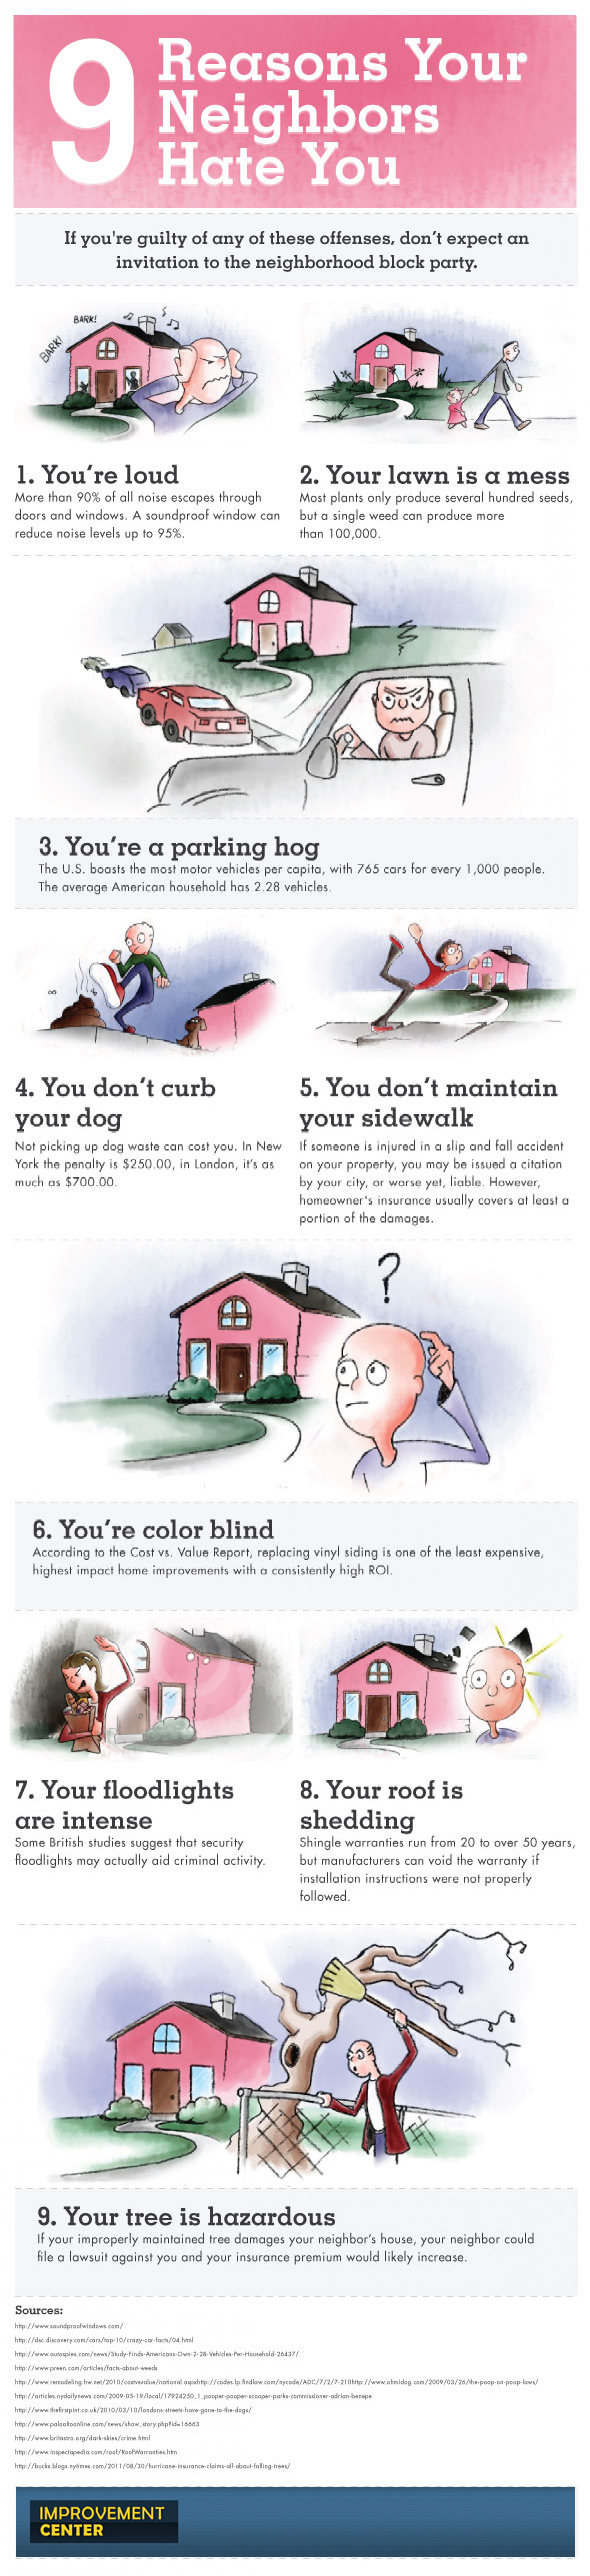 9 Reasons your neighbors hate you Infographic